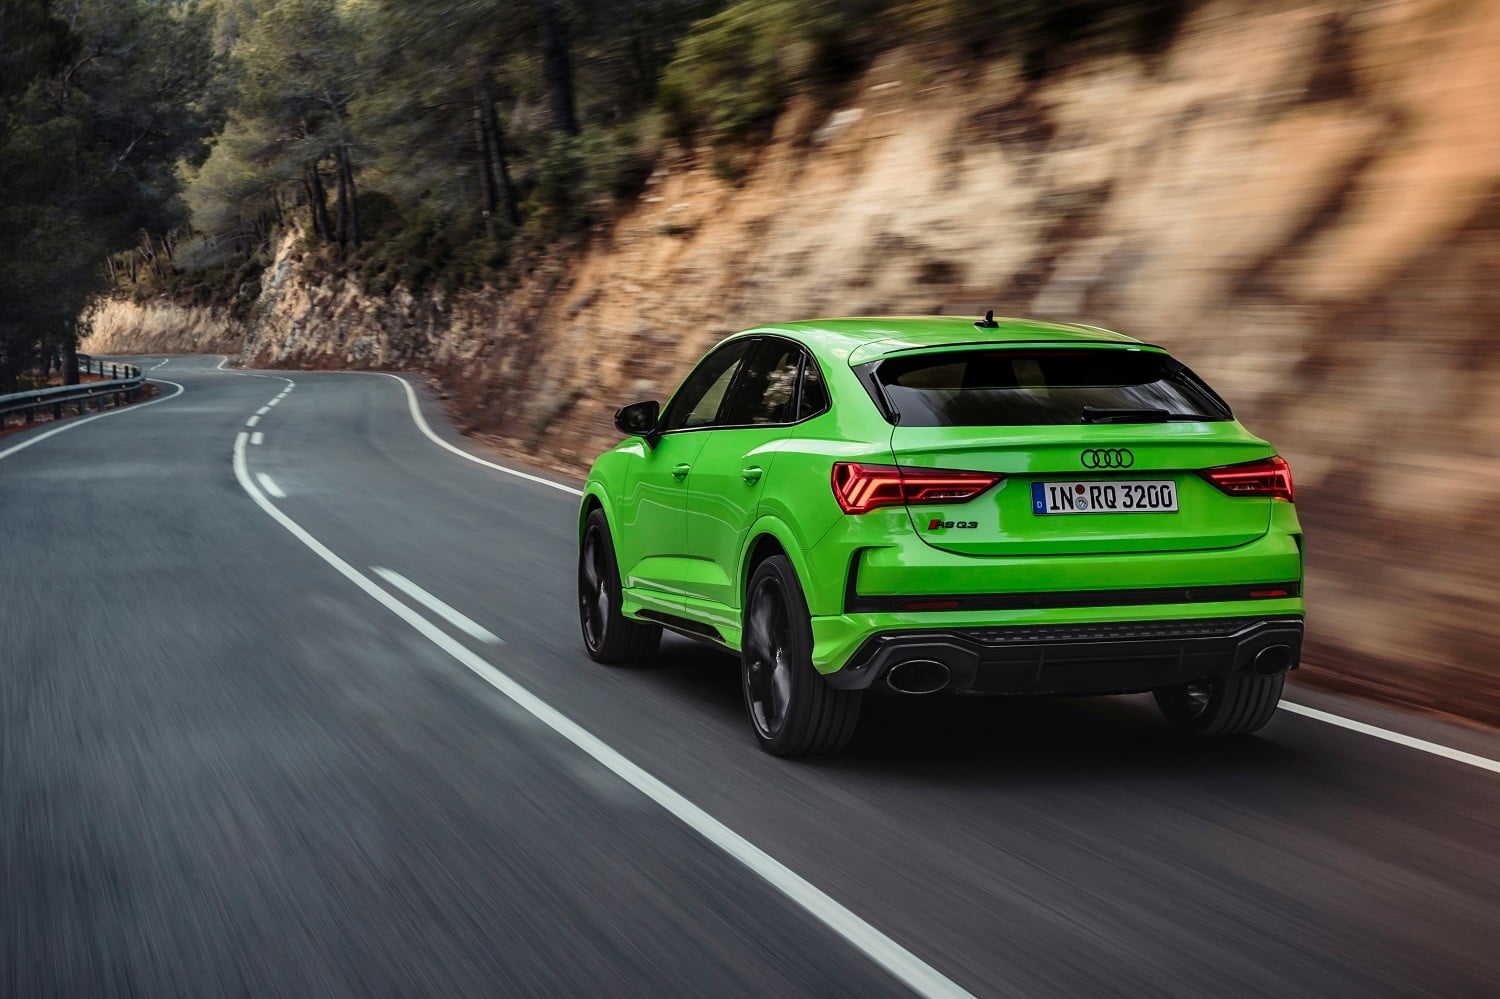 The 2020 Audi Rs Q3 Is A Souped Up Suv You Ll Have To Admire From Afar